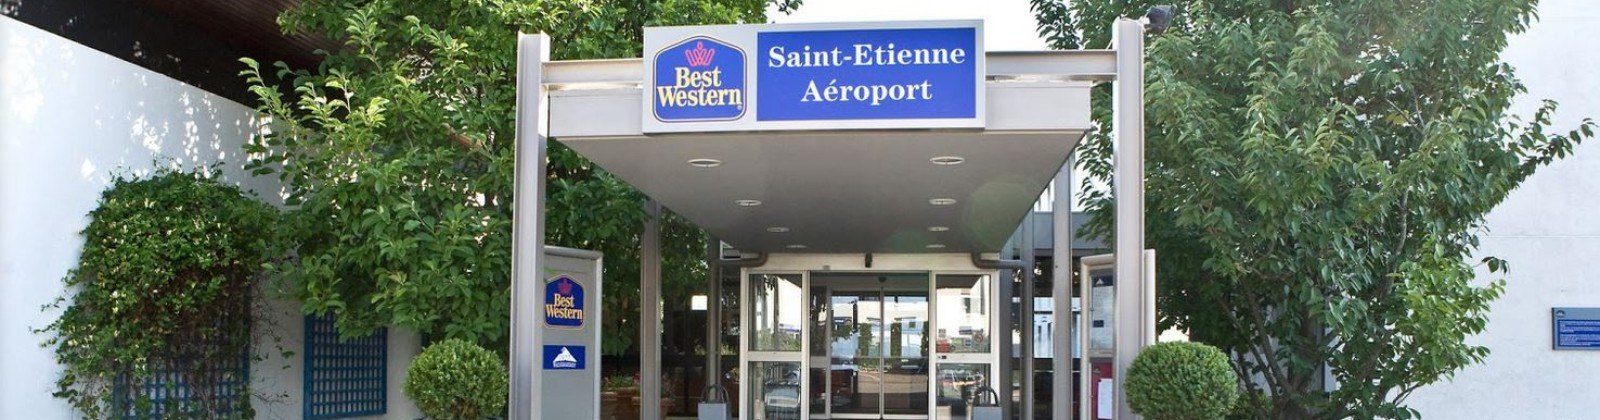 saint etienne aeroport olevene restaurant hotel seminaire booking reunion booking